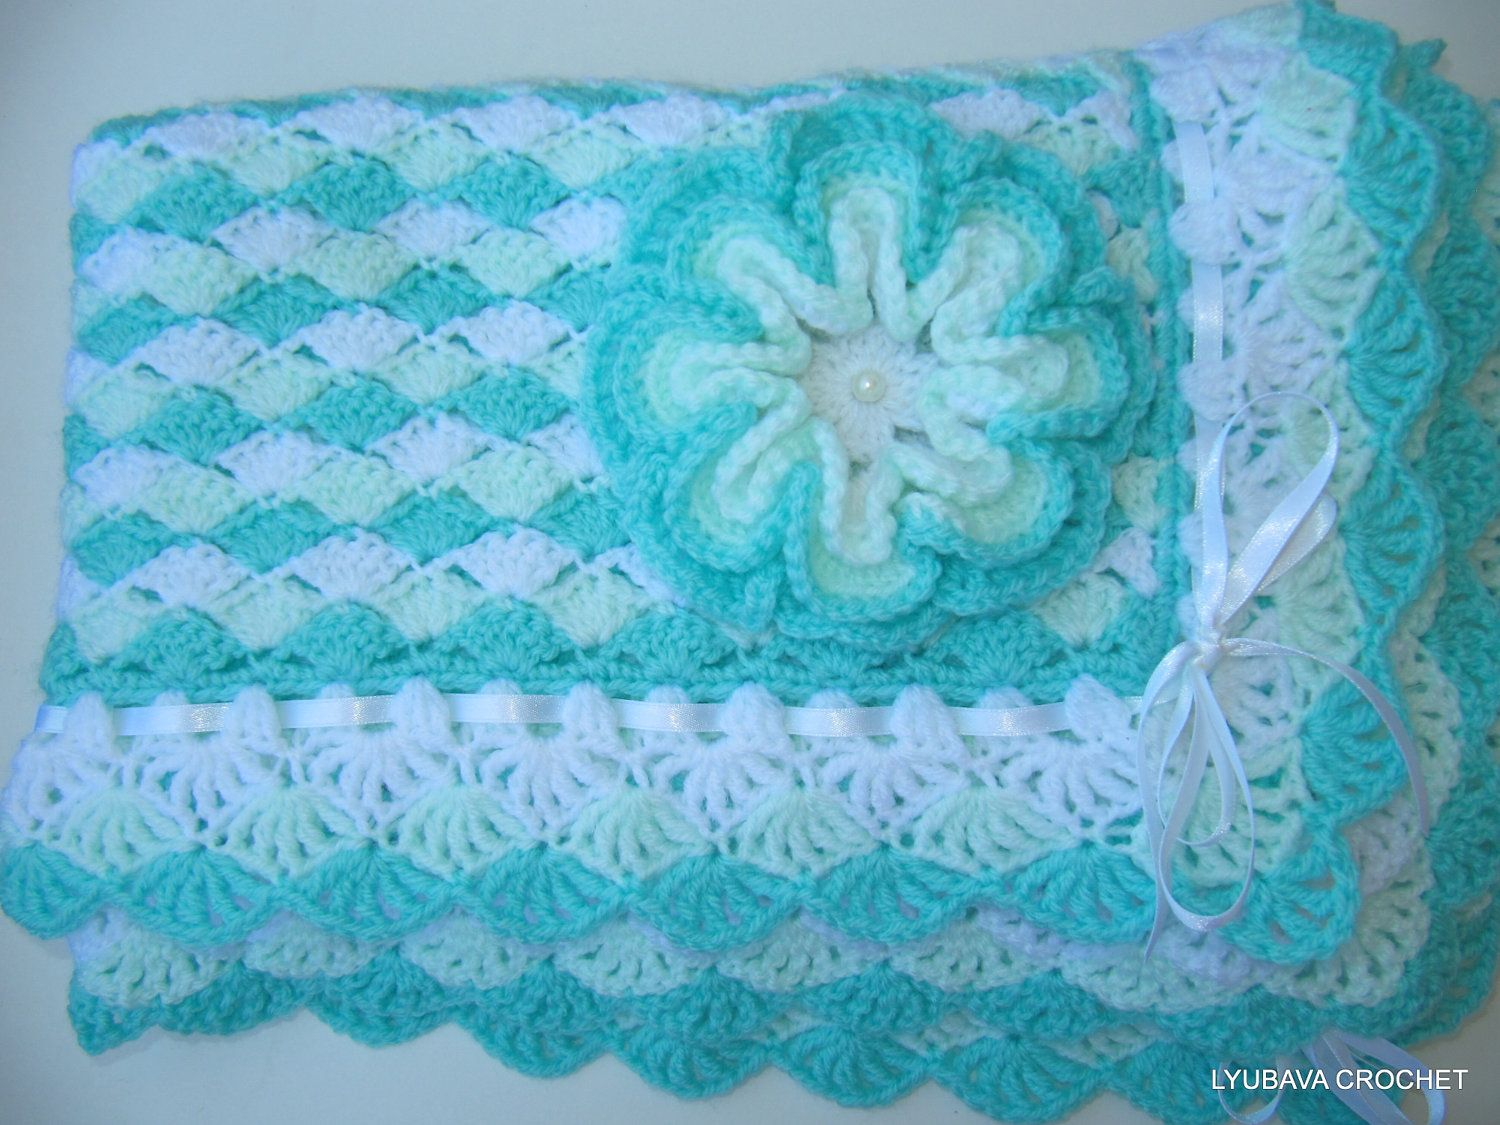 Crochet pattern baby blanket turquoise sea shell by lyubavacrochet crochet pattern baby blanket turquoise sea shell by lyubavacrochet 500 bankloansurffo Gallery